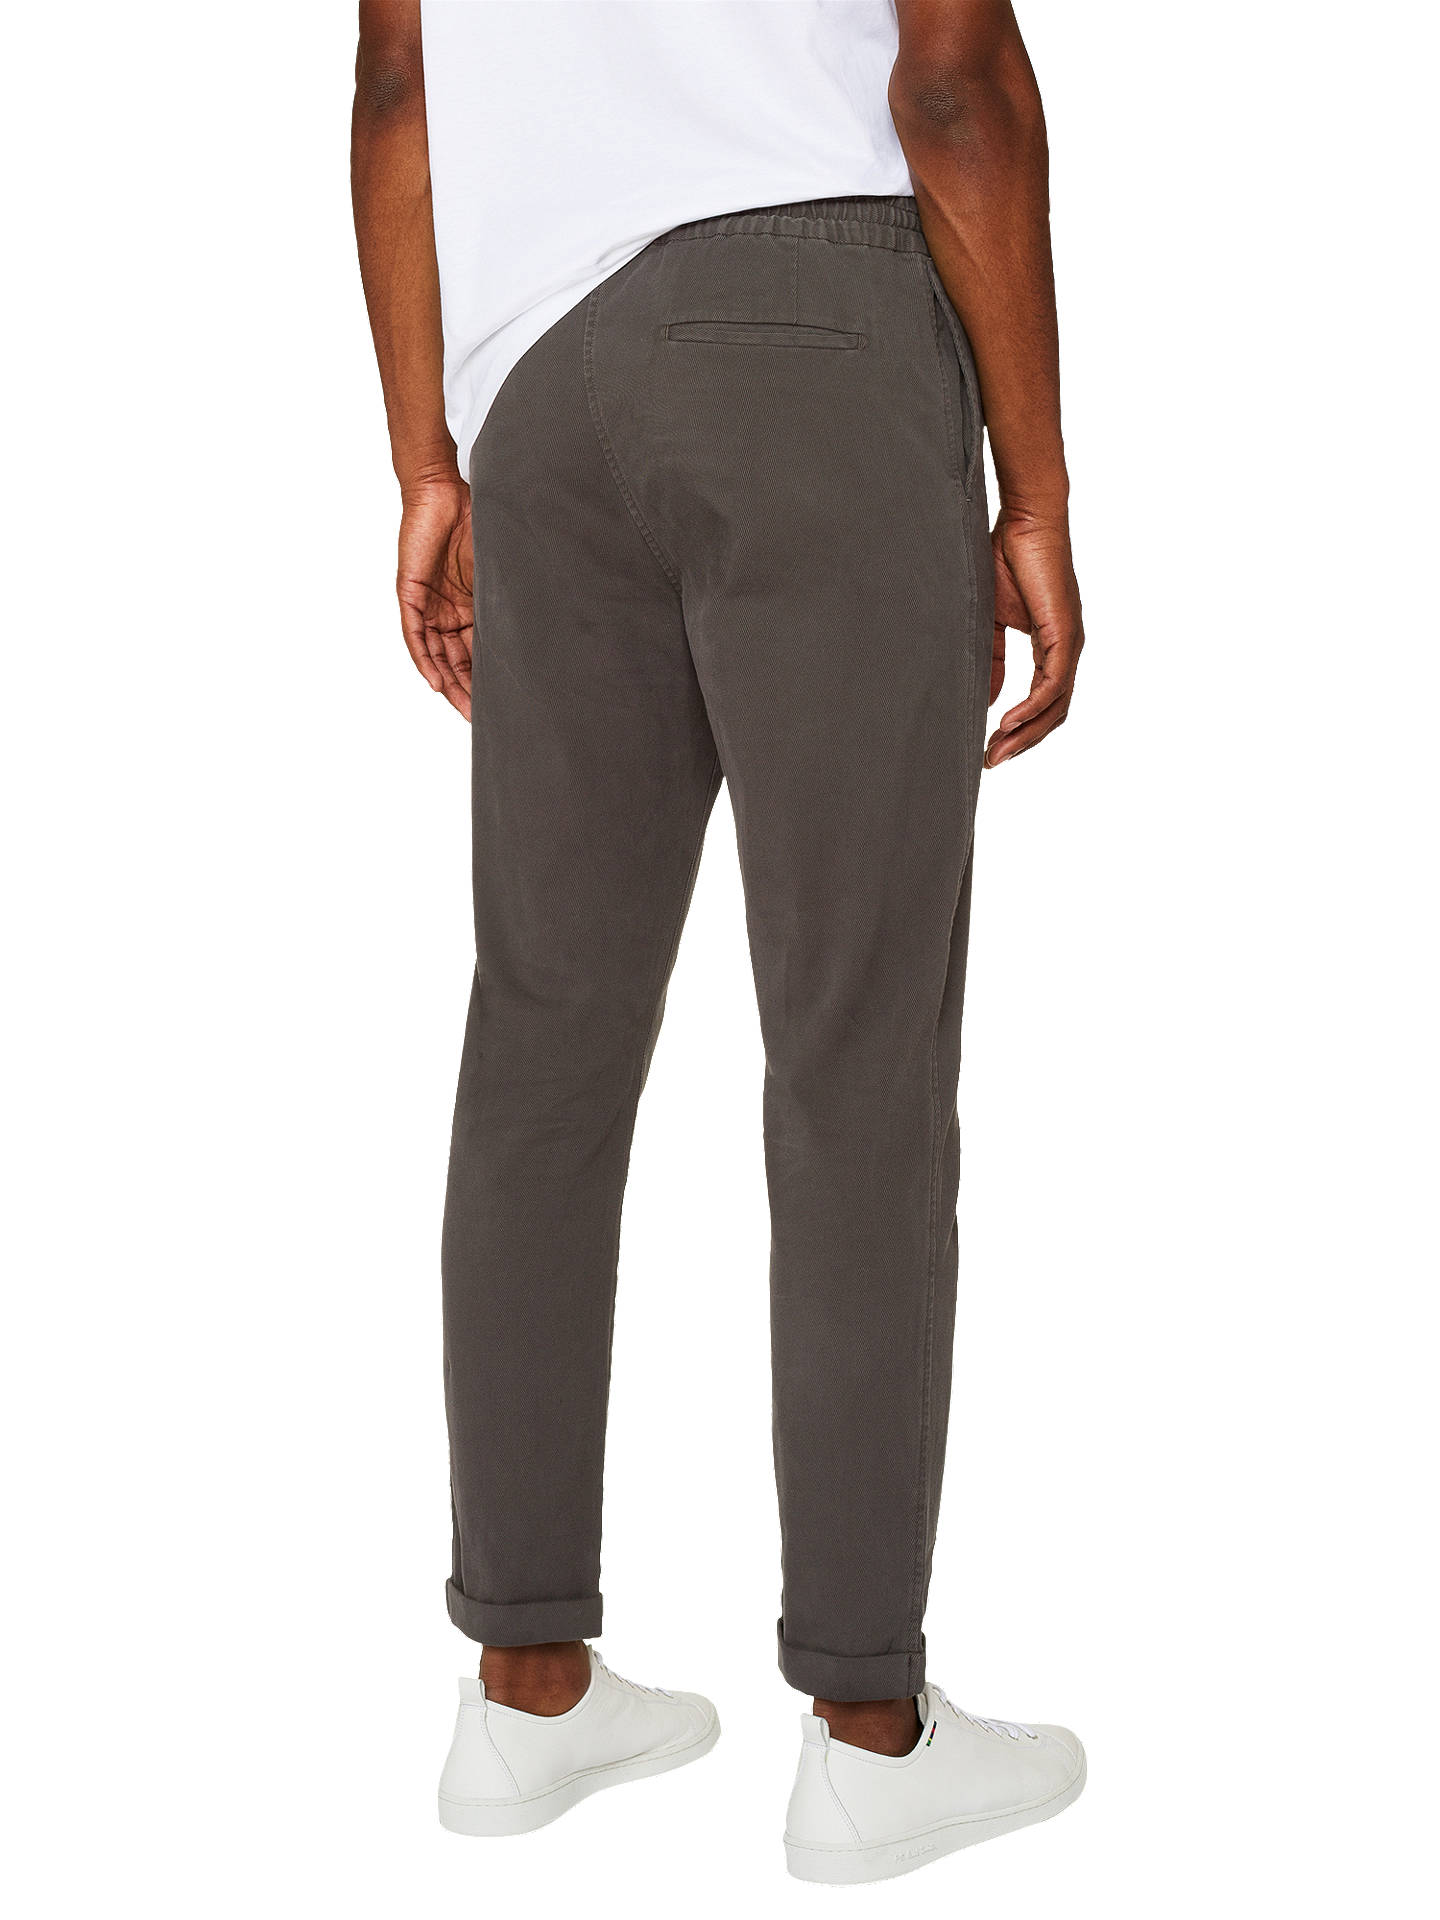 BuyPS Paul Smith Drawstring Trousers, Grey, 30R Online at johnlewis.com